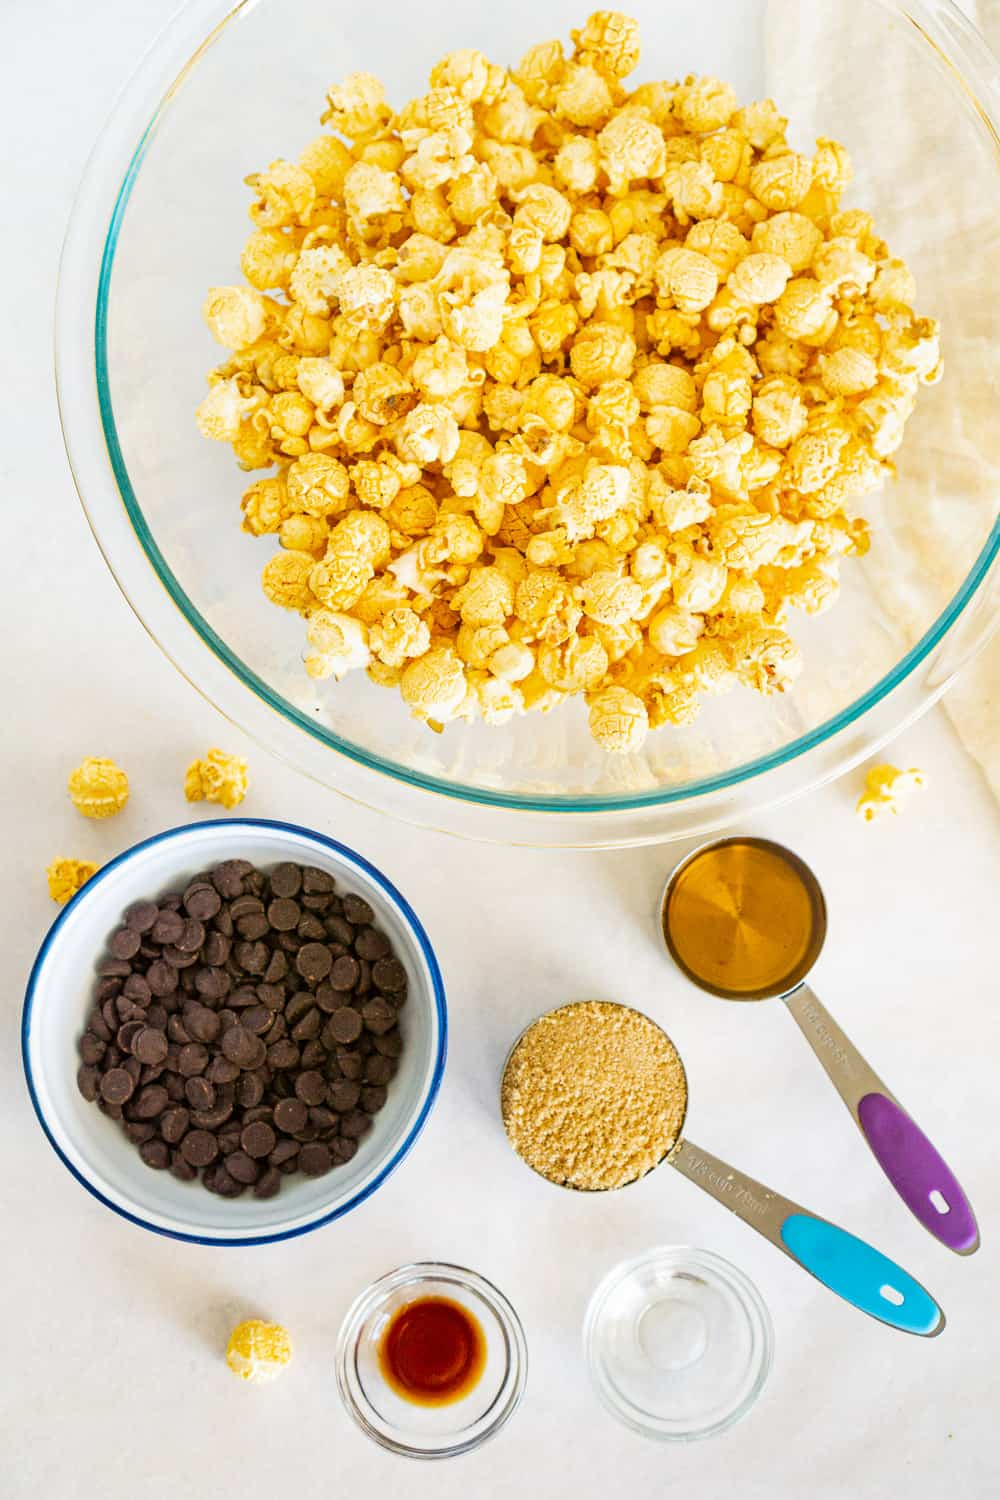 ingredients to make vegan chocolate popcorn balls: popcorn, dark chocolate, maple syrup, brown sugar, vanilla